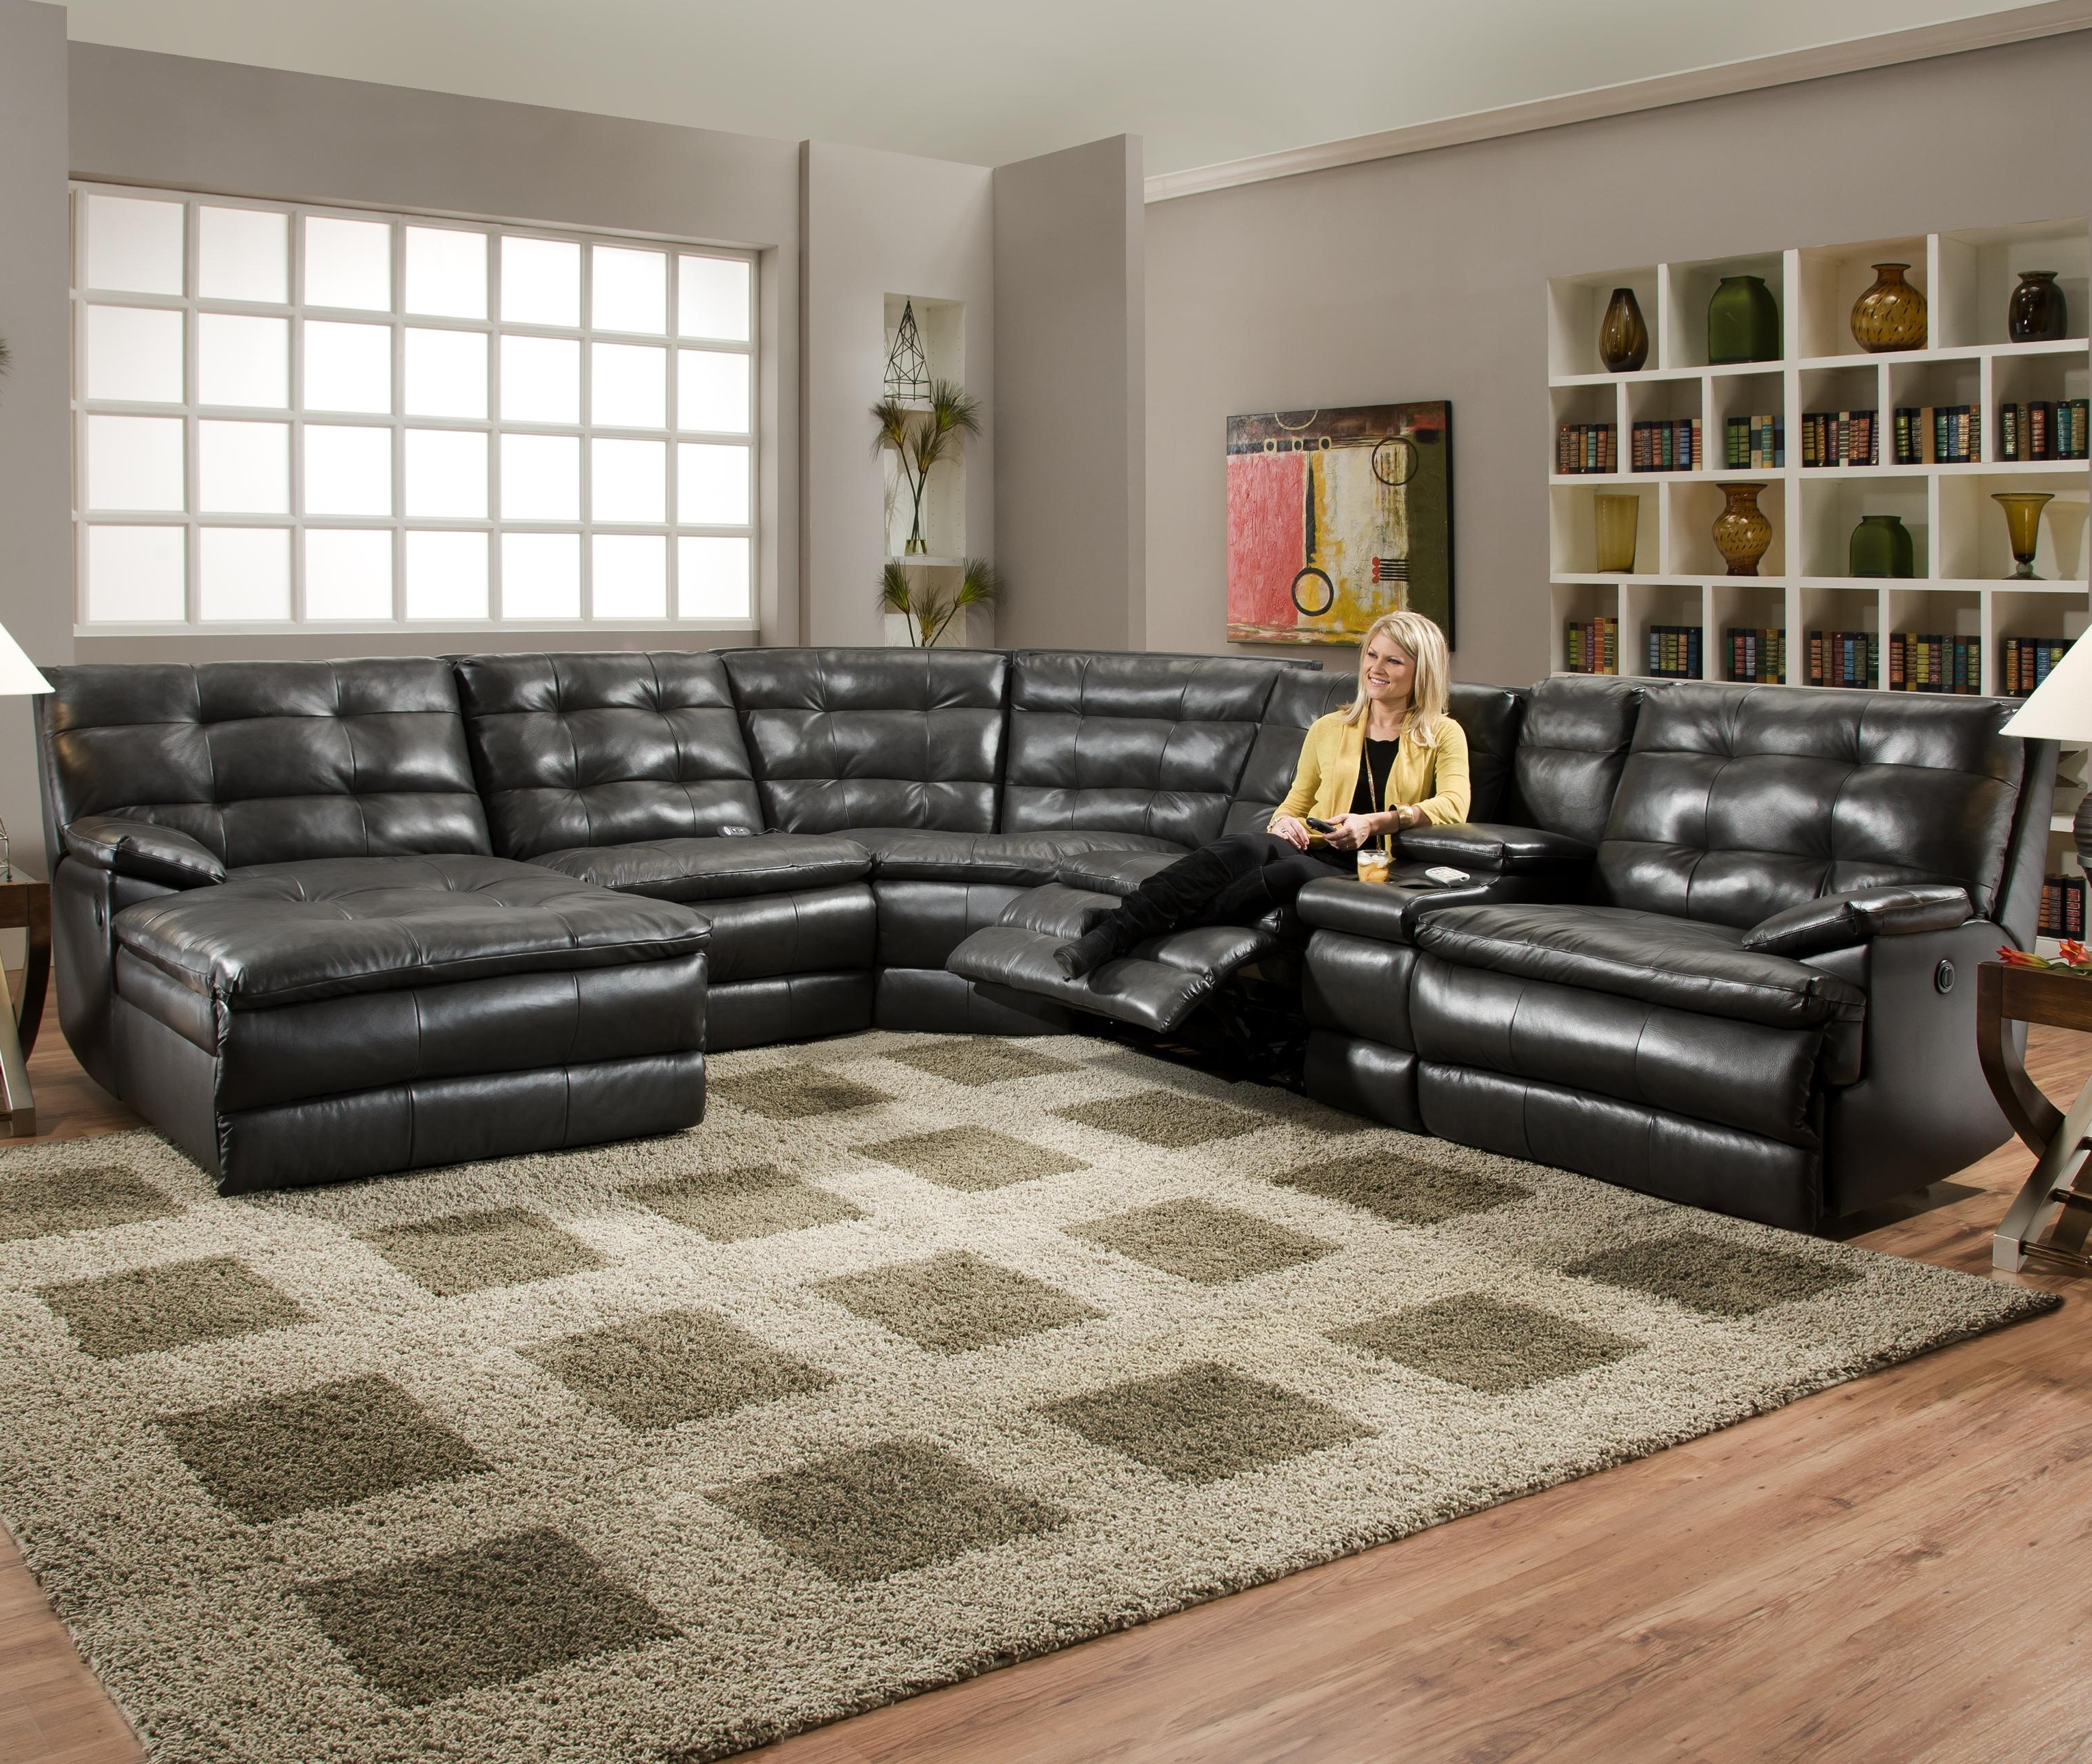 Preferred Leather Motion Sectional Sofas Regarding Luxurious Tufted Leather Sectional Sofa In Classy Black Color With (View 8 of 20)